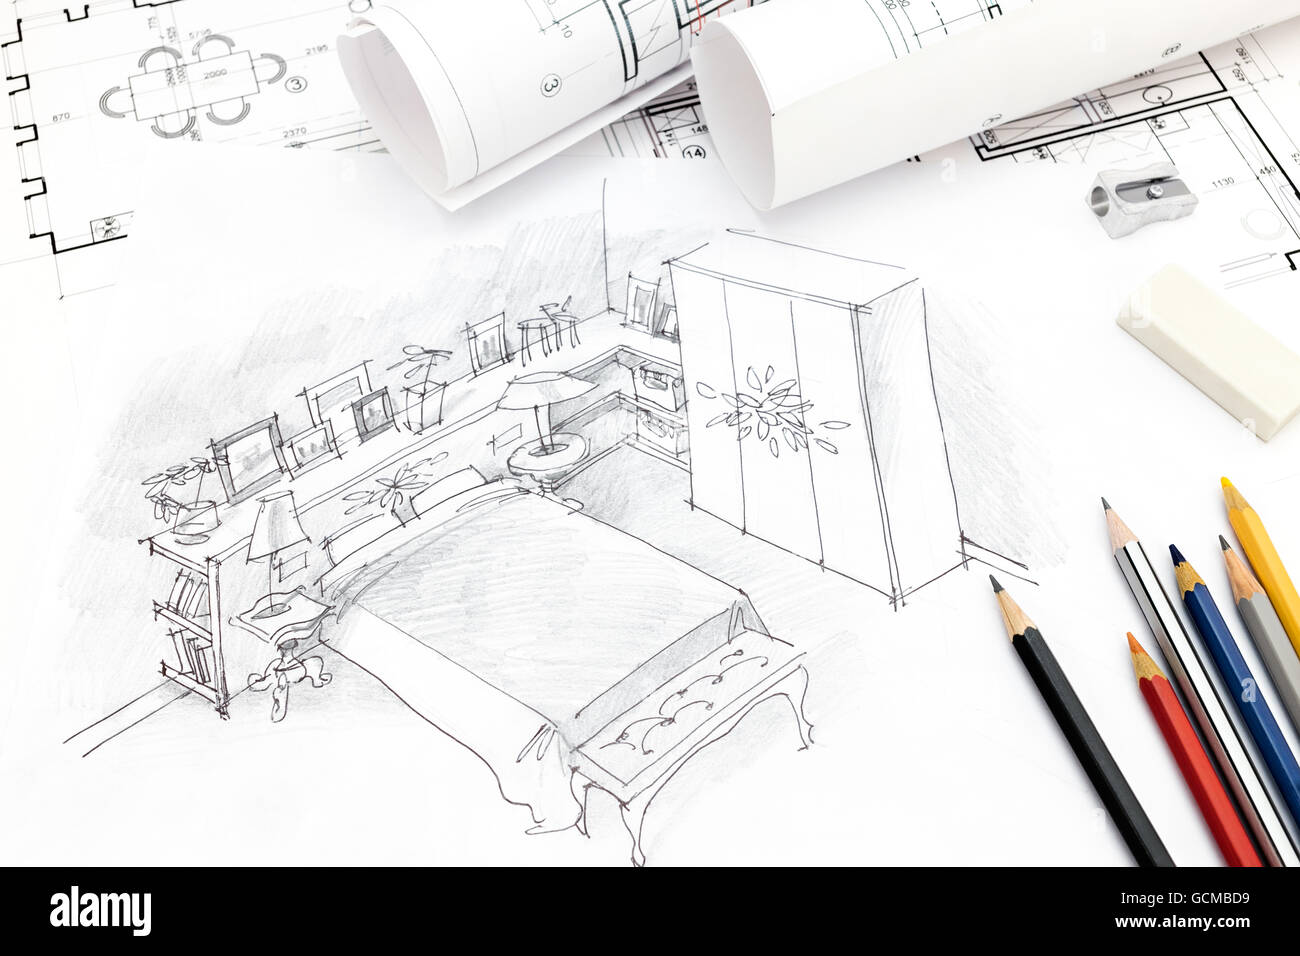 Freehand pencil drawing bedroom interior stock photos freehand